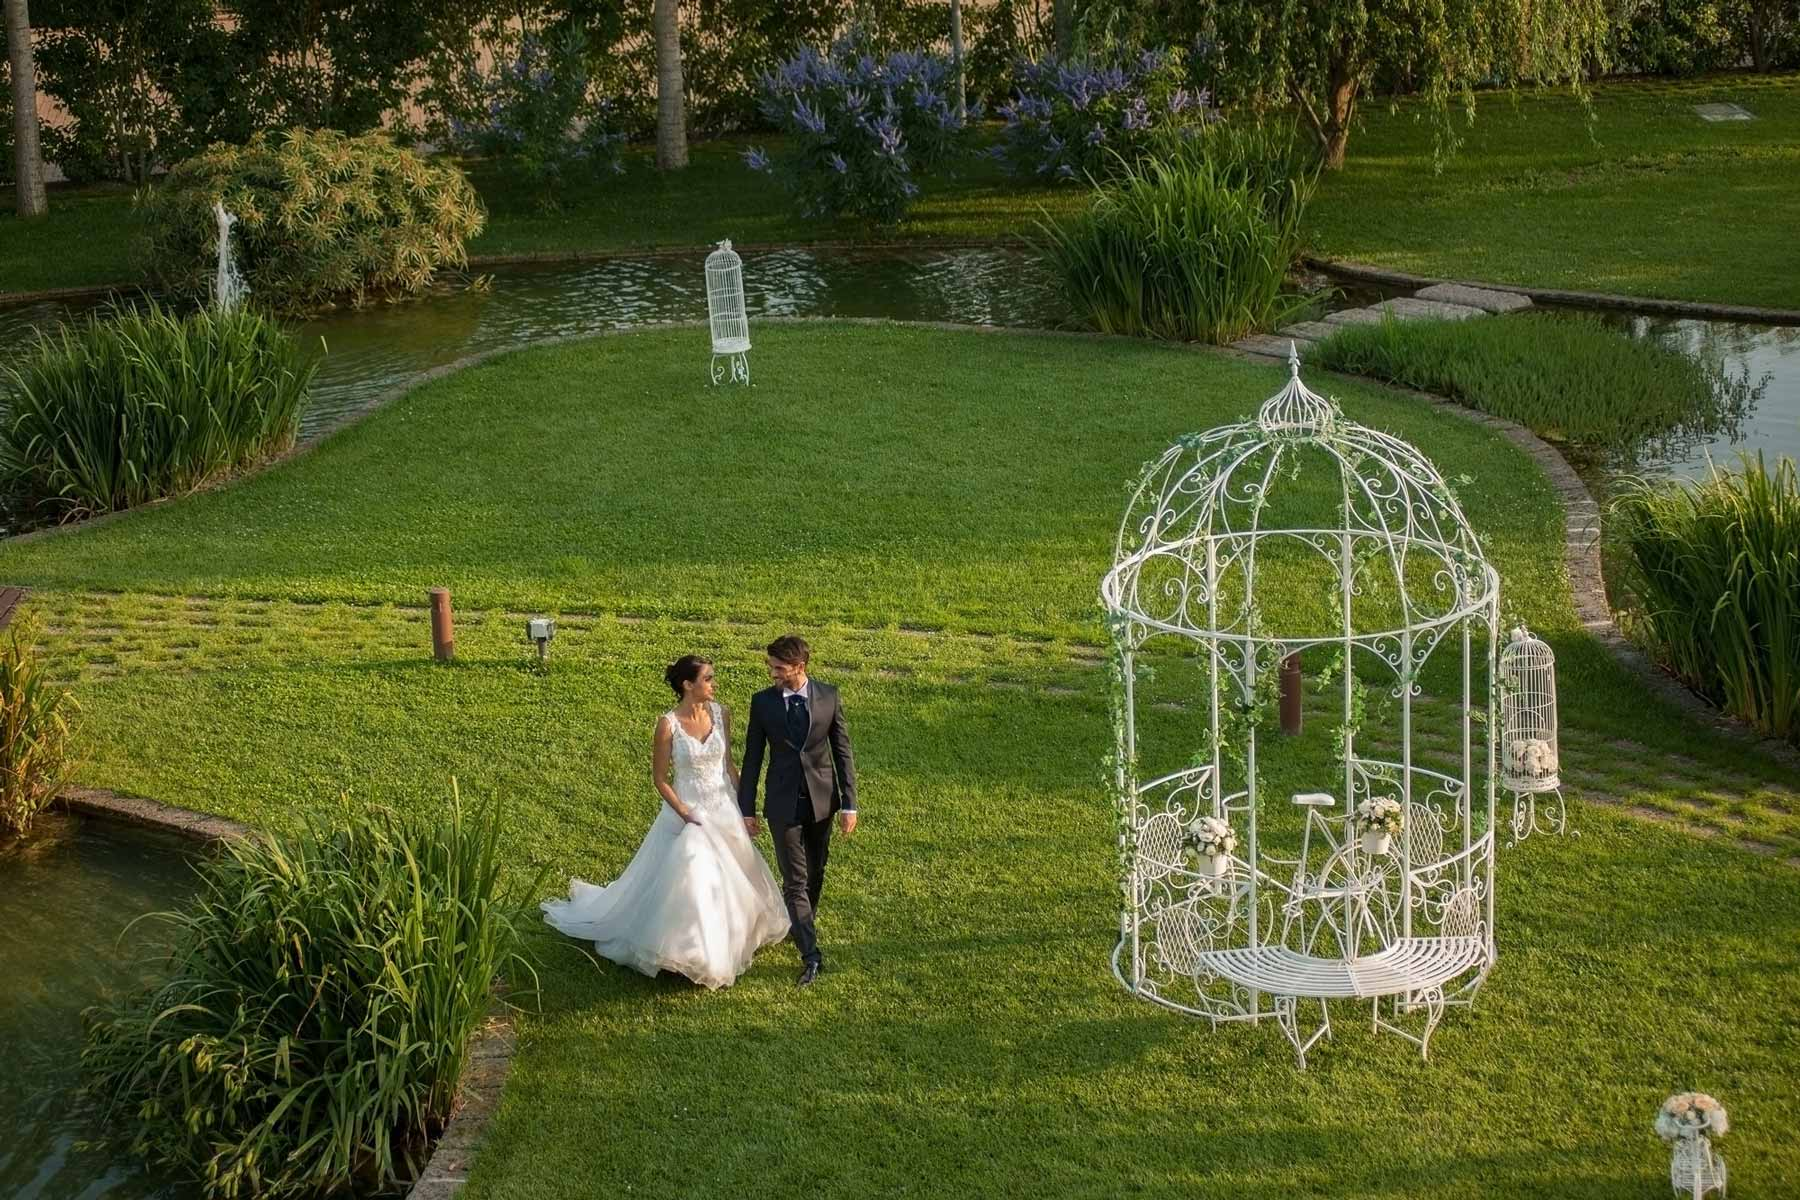 Matrimoni paestum l araba fenice wedding hotel